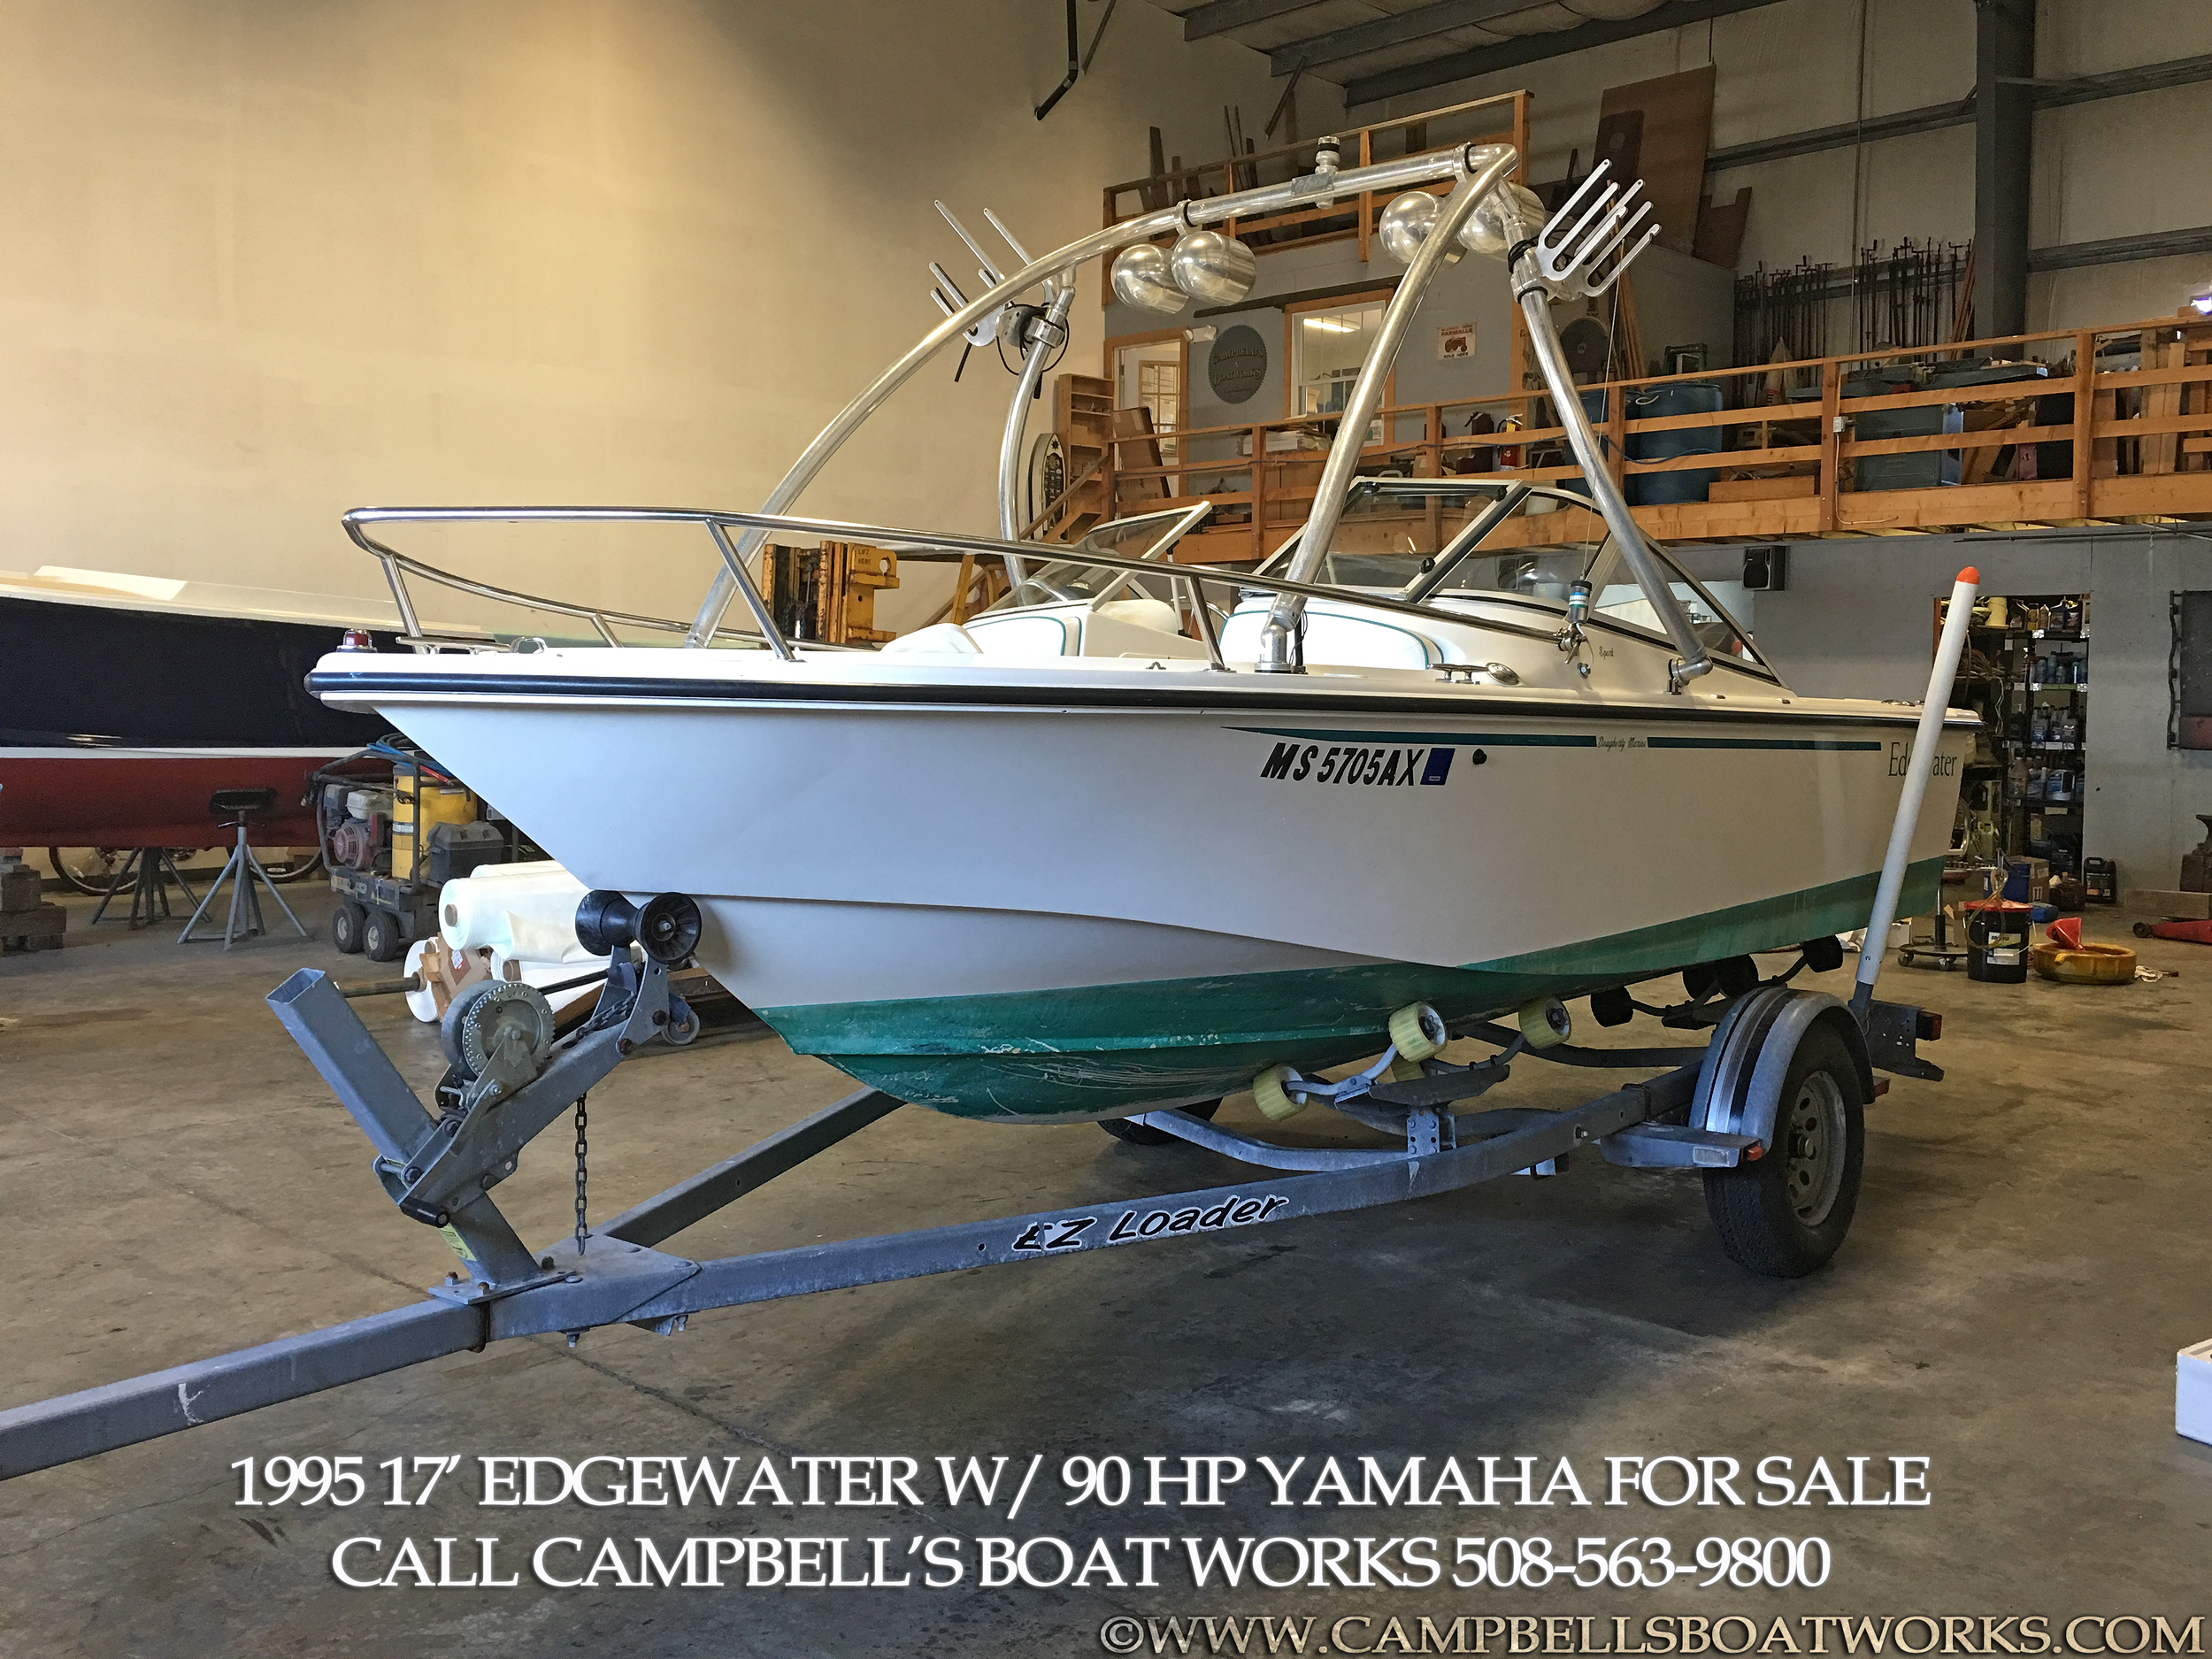 17' Dual Console Edgewater with 90 hp Yamaha outboard and Ez Loader Trailer. Call 508-563-9800 with questions or to schedule a time to come see this boat!